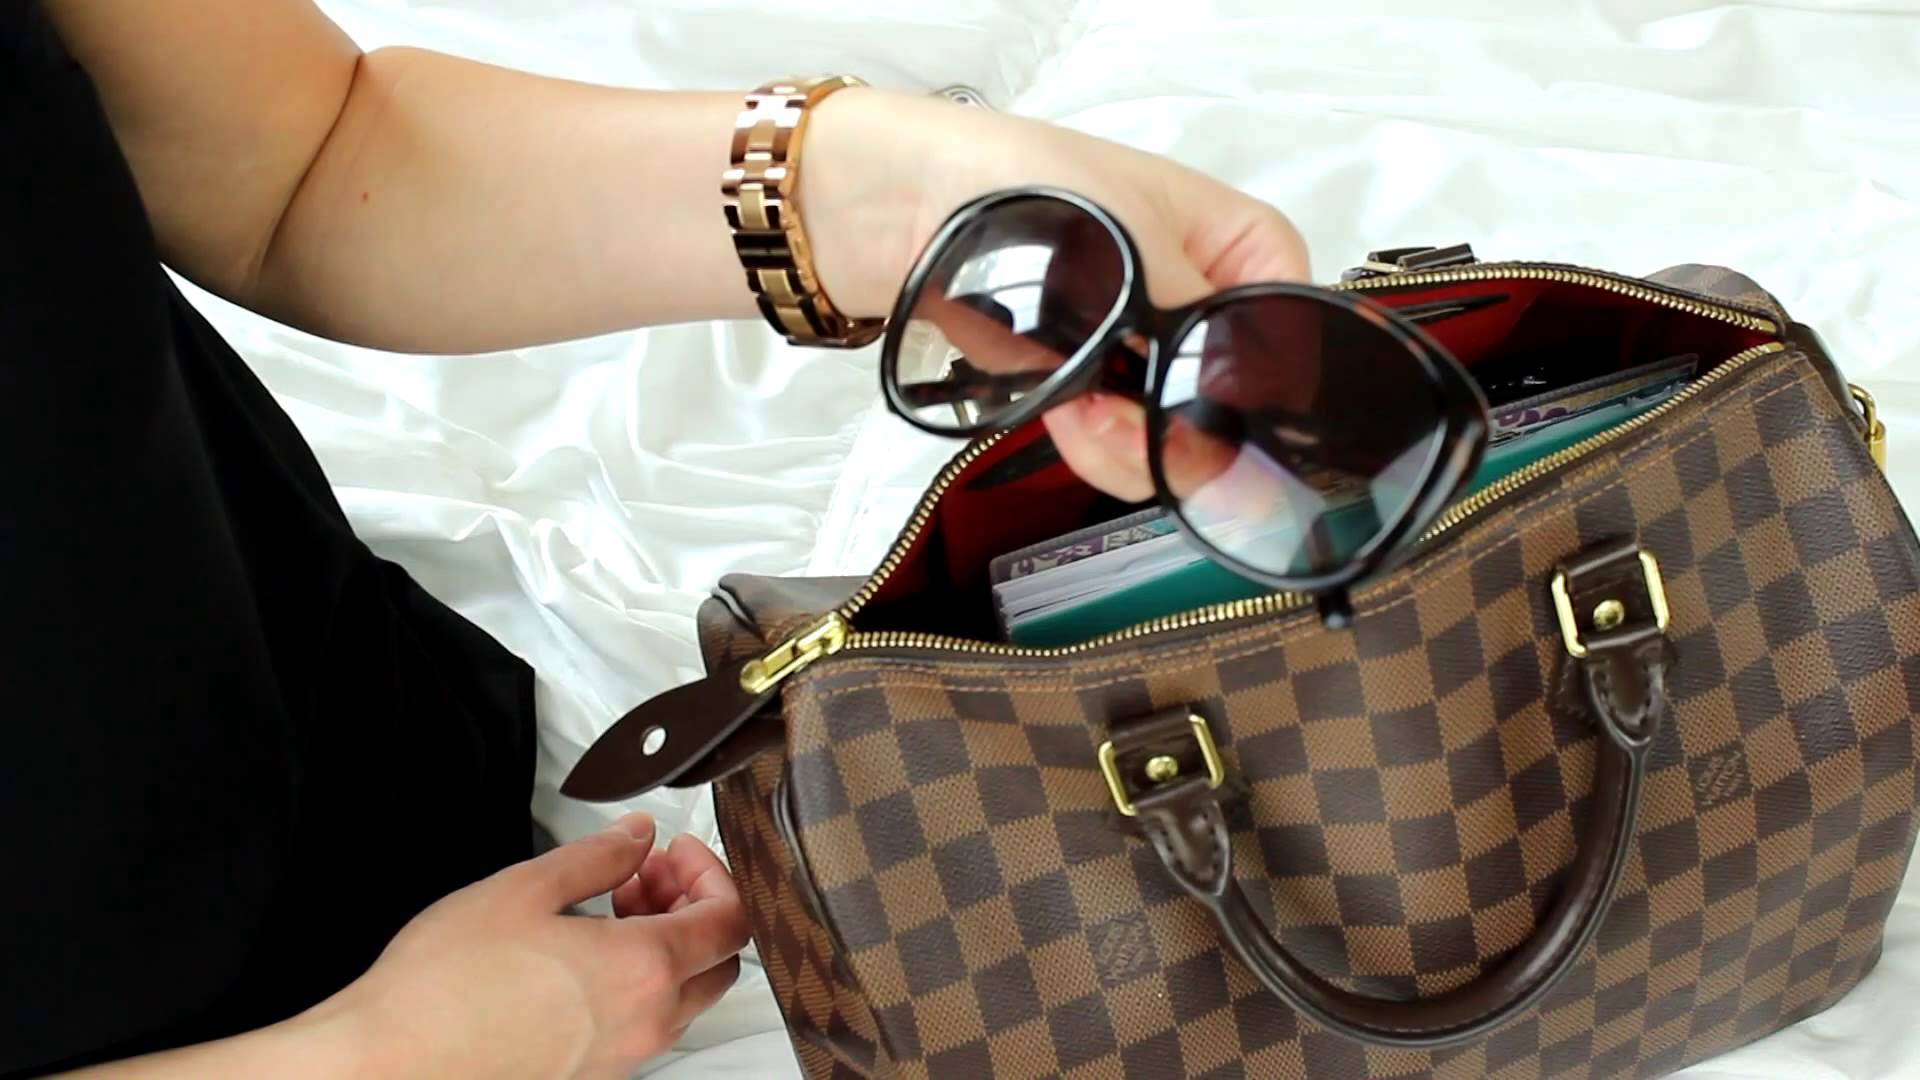 c3afd5b6b36a EVERYTHING YOU NEED TO KNOW ABOUT THE SPEEDY. The Louis Vuitton Speedy bag  ...